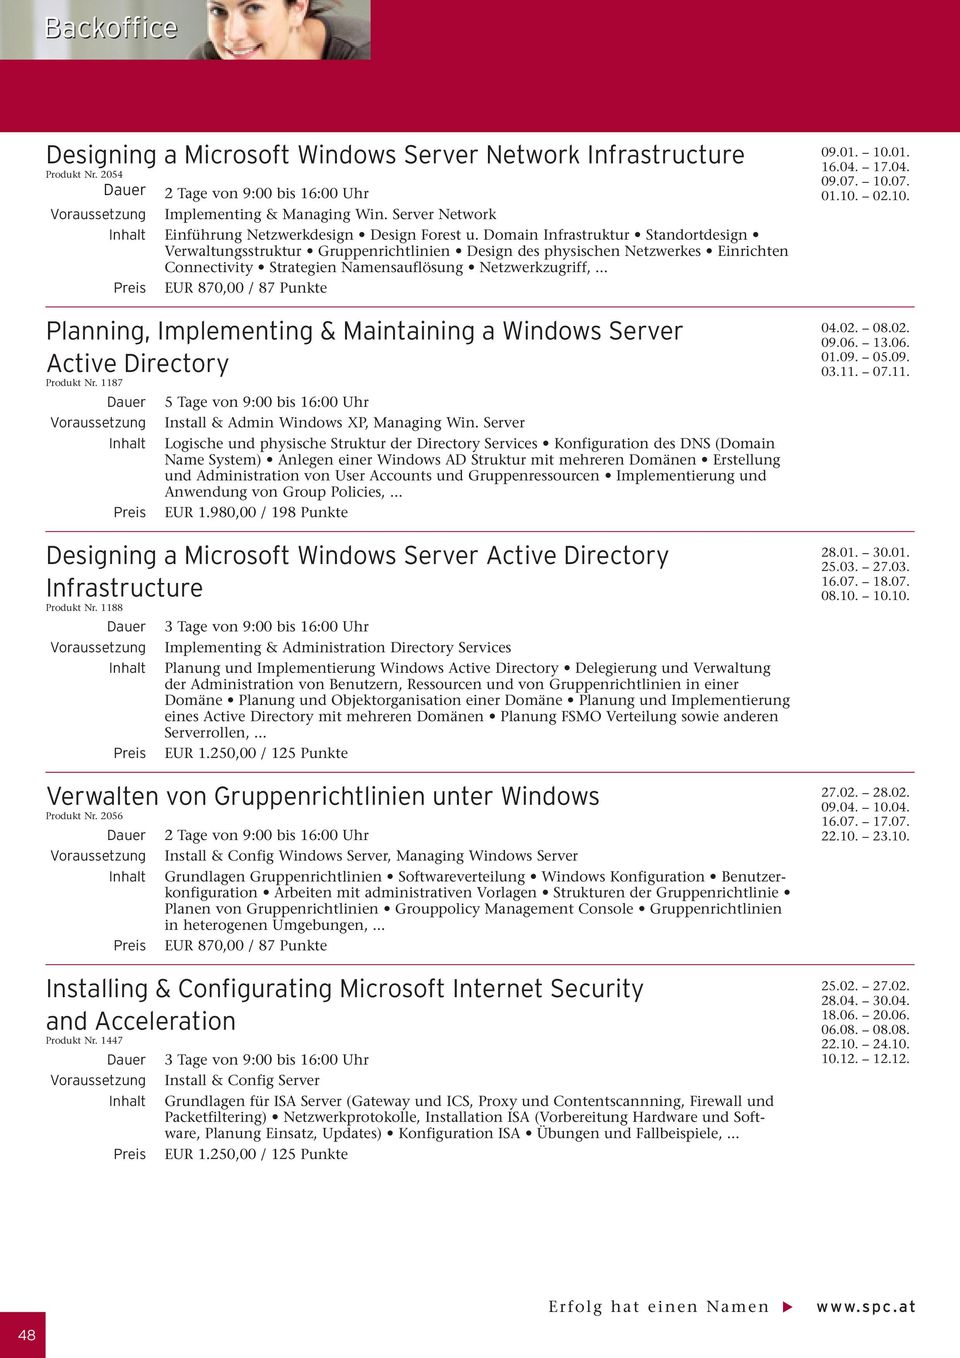 .. Planning, mplementing & Maintaining a Windows Server Active Directory Produkt Nr. 1187 nstall & Admin Windows XP, Managing Win.